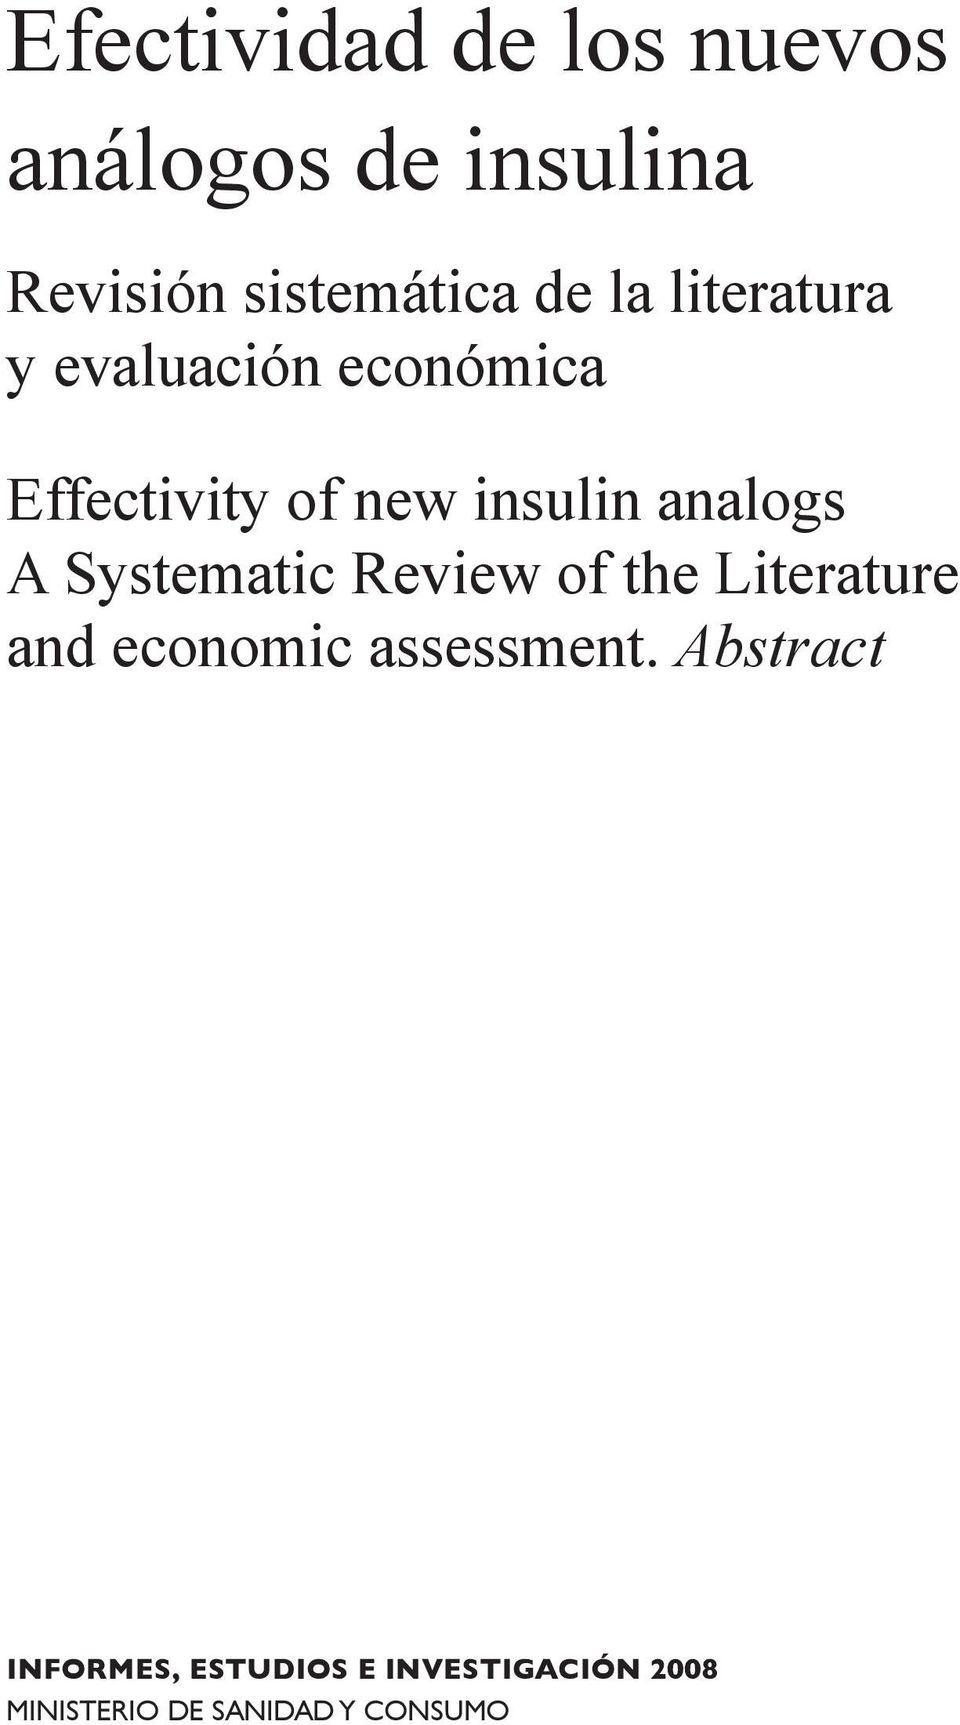 A Systematic Review of the Literature and economic assessment.